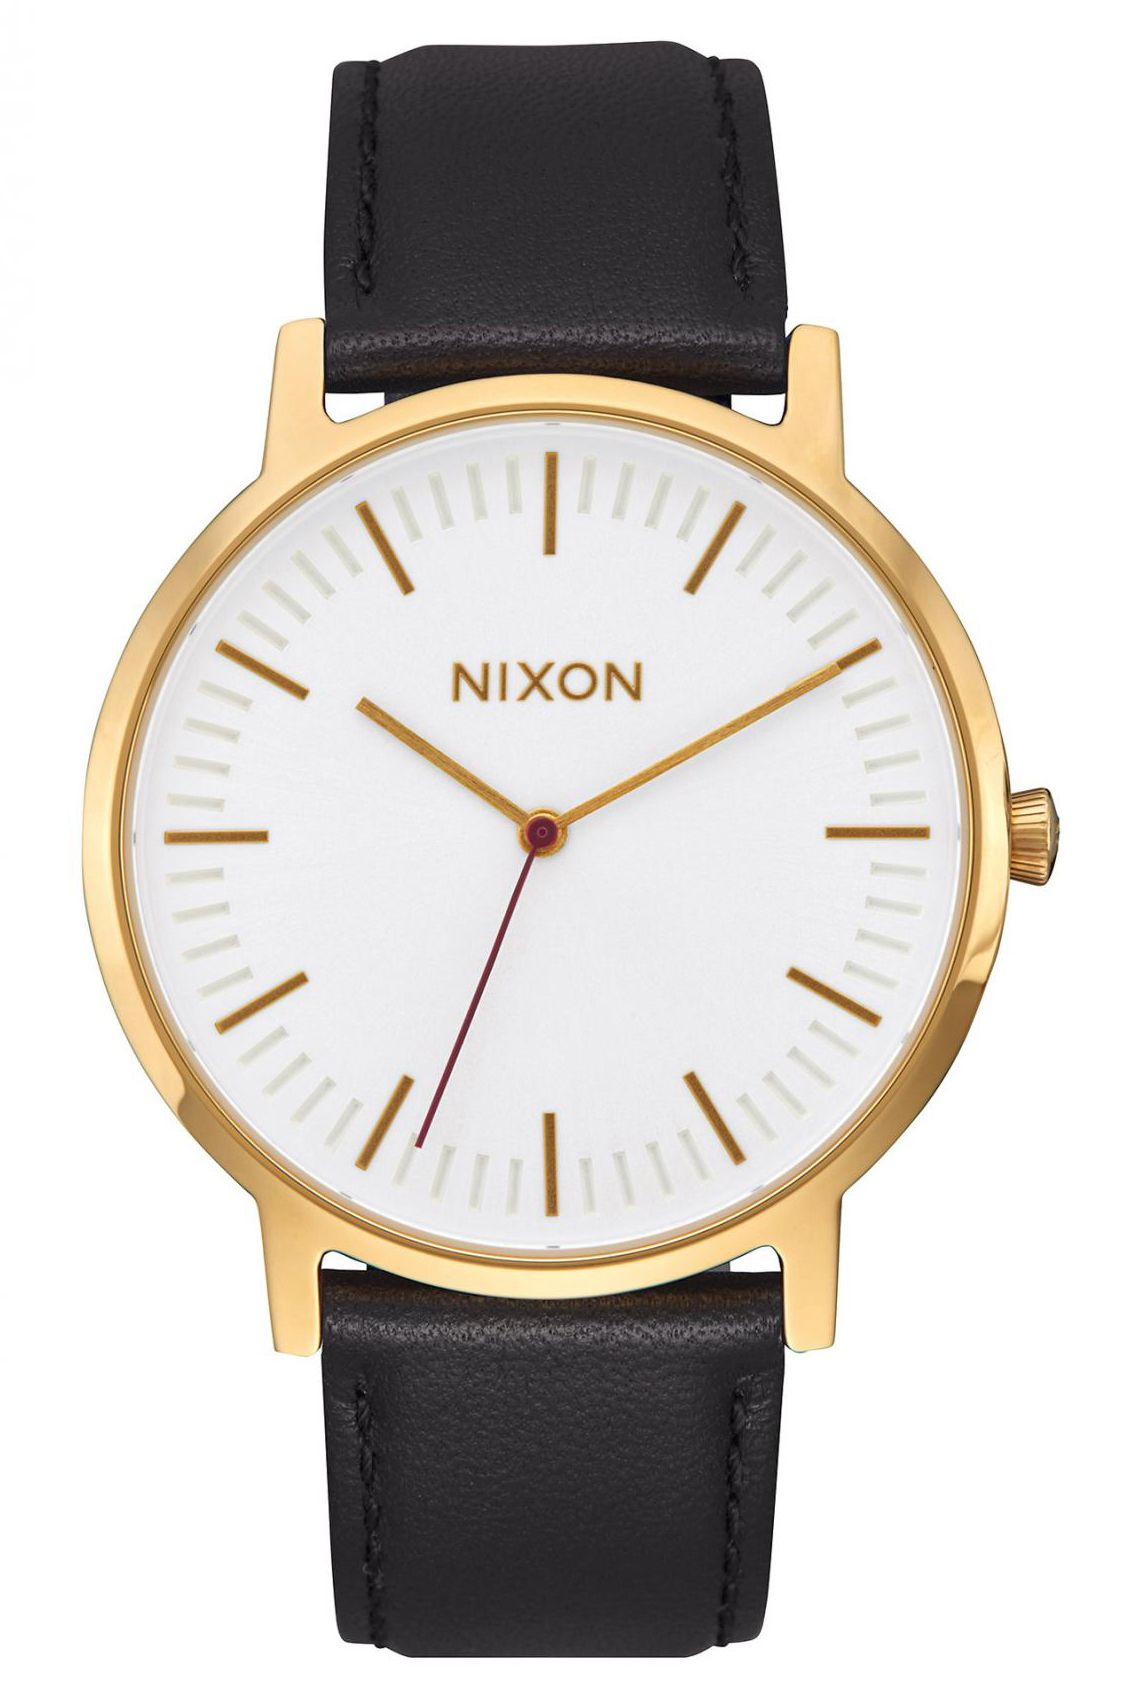 Relogio Nixon PORTER PACK Gold/Black/Navy